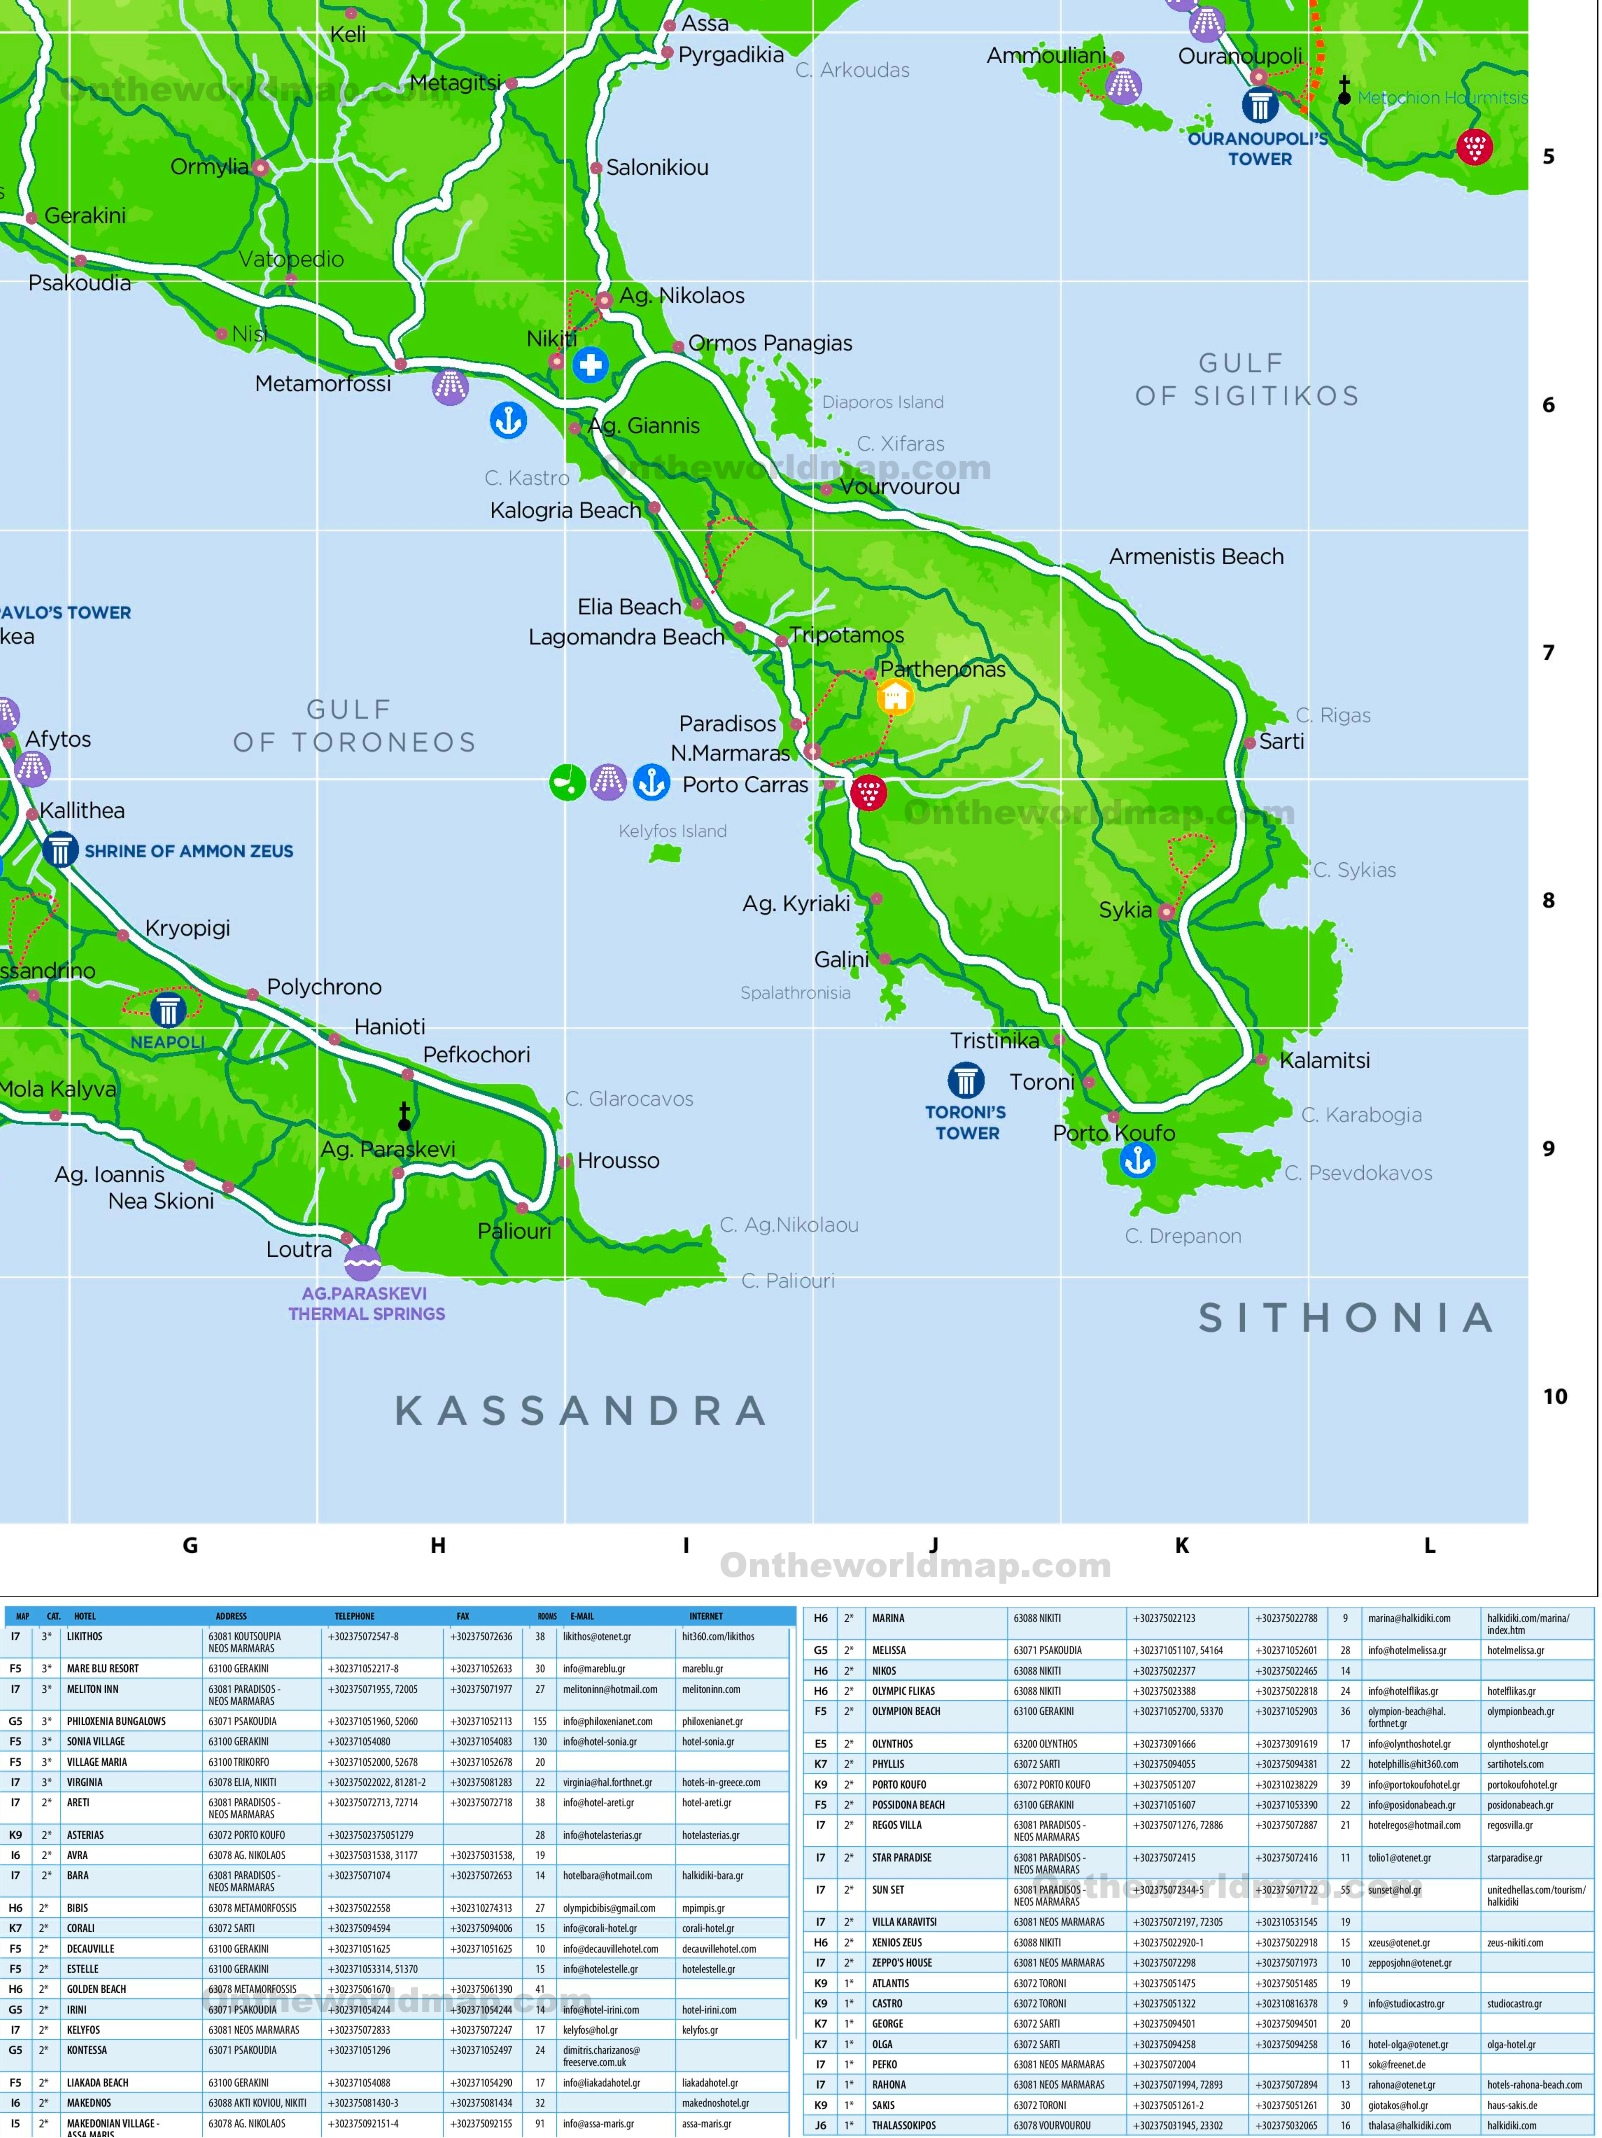 Sithonia hotels and sightseeings map